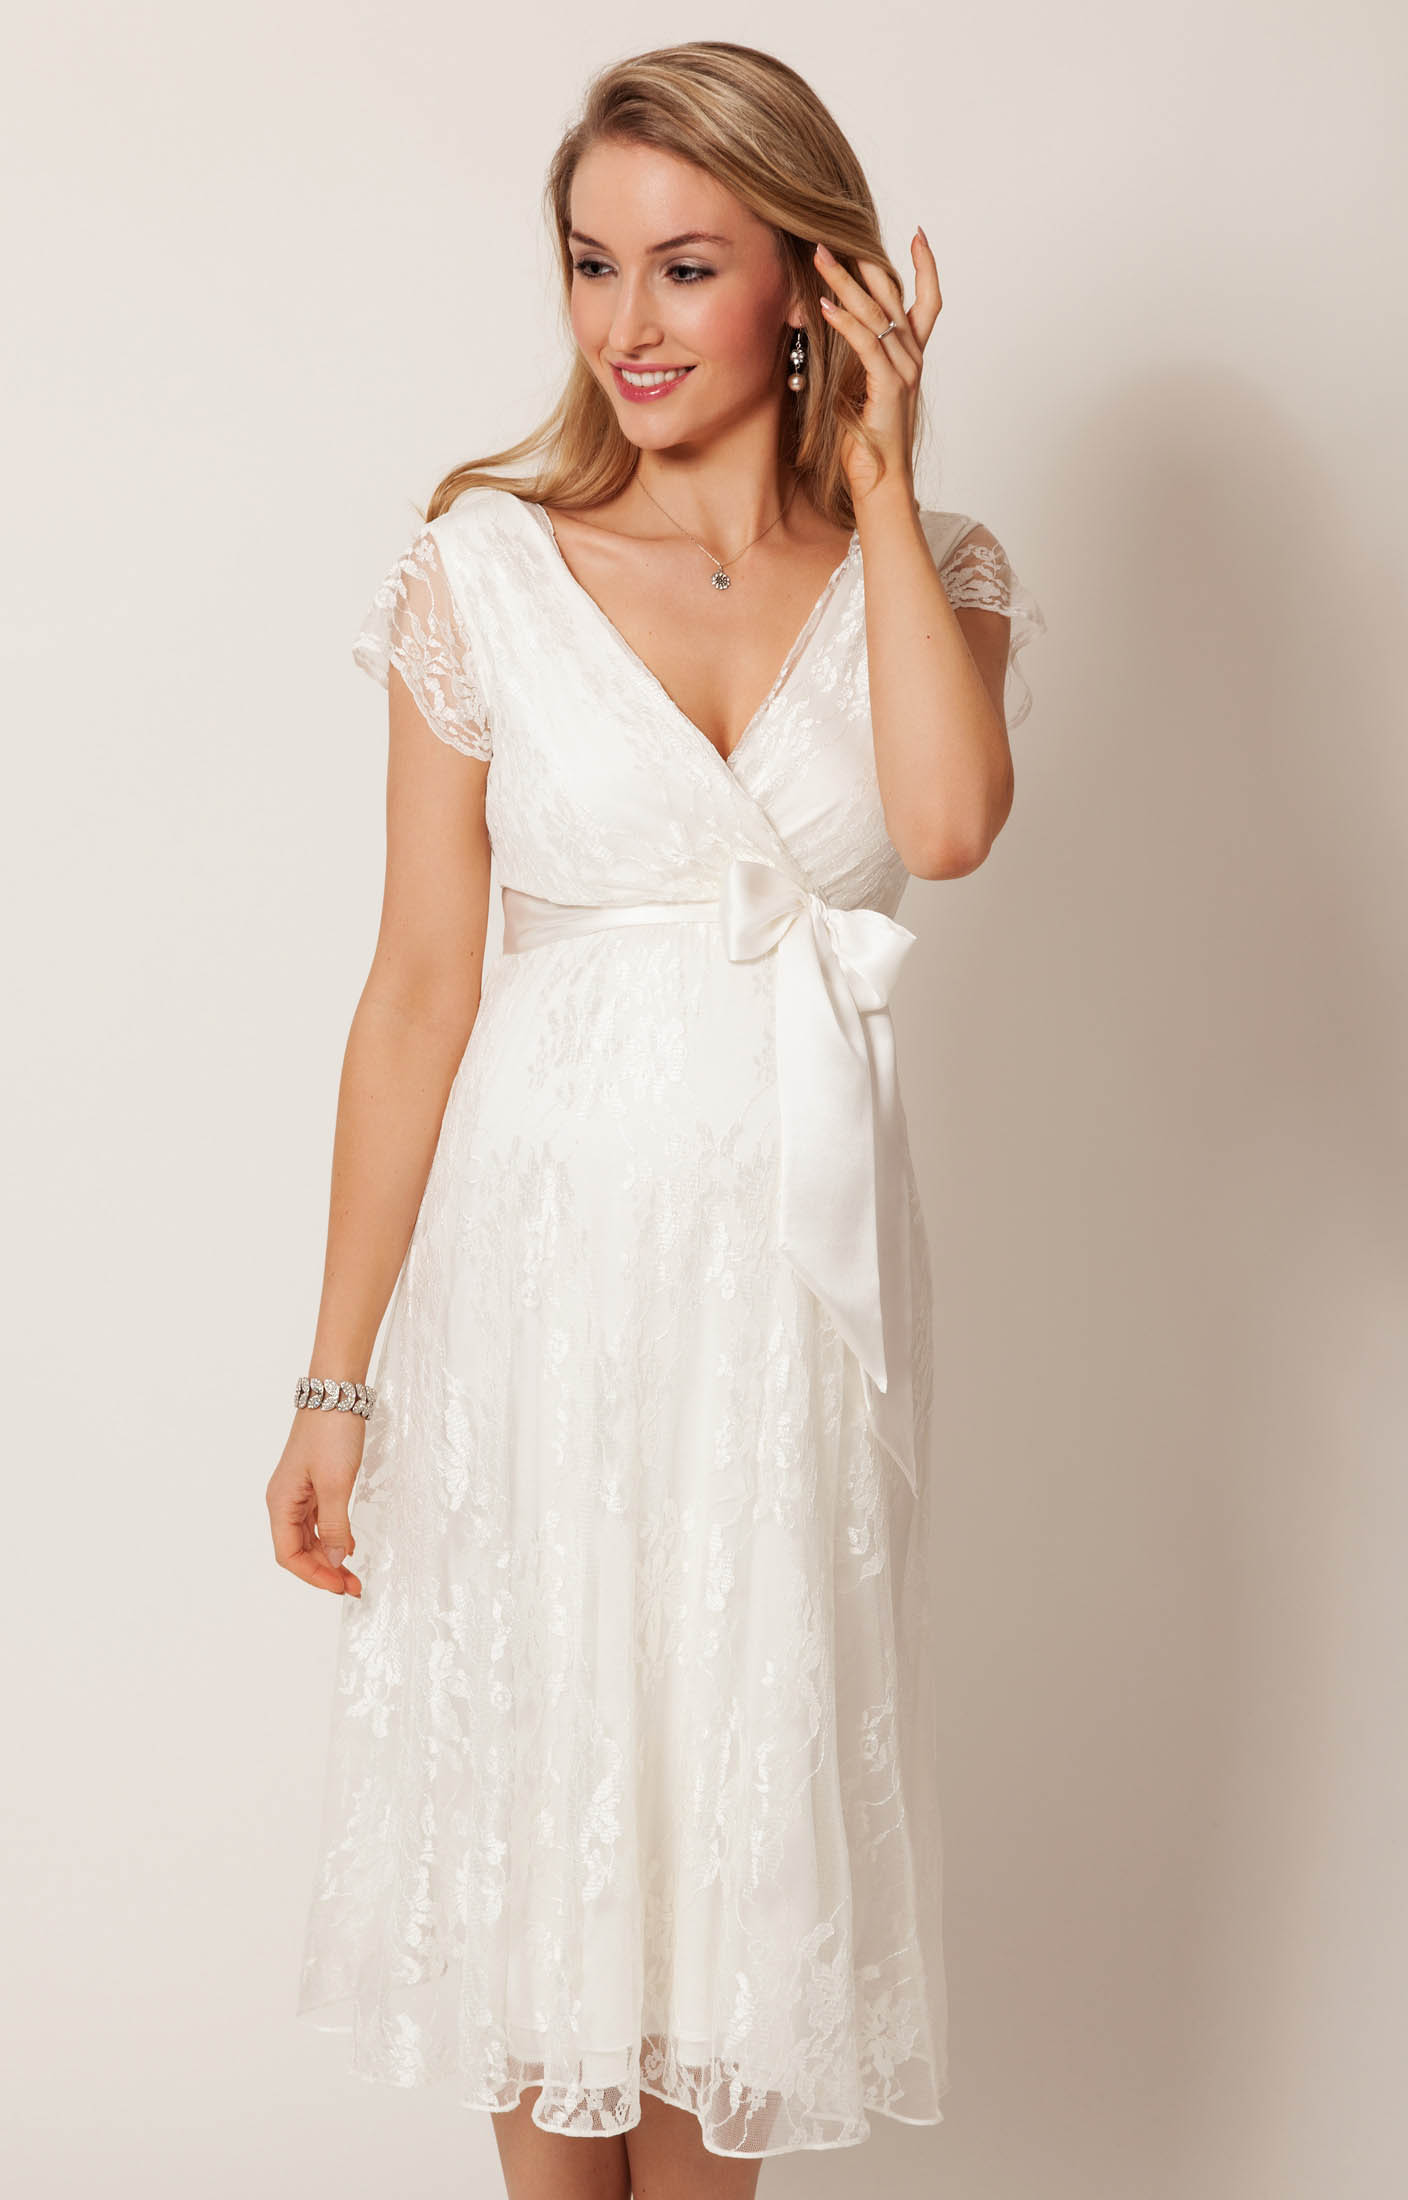 Brilliant WhiteAzalea Maternity Dresses Stunning Maternity Wedding Dresses